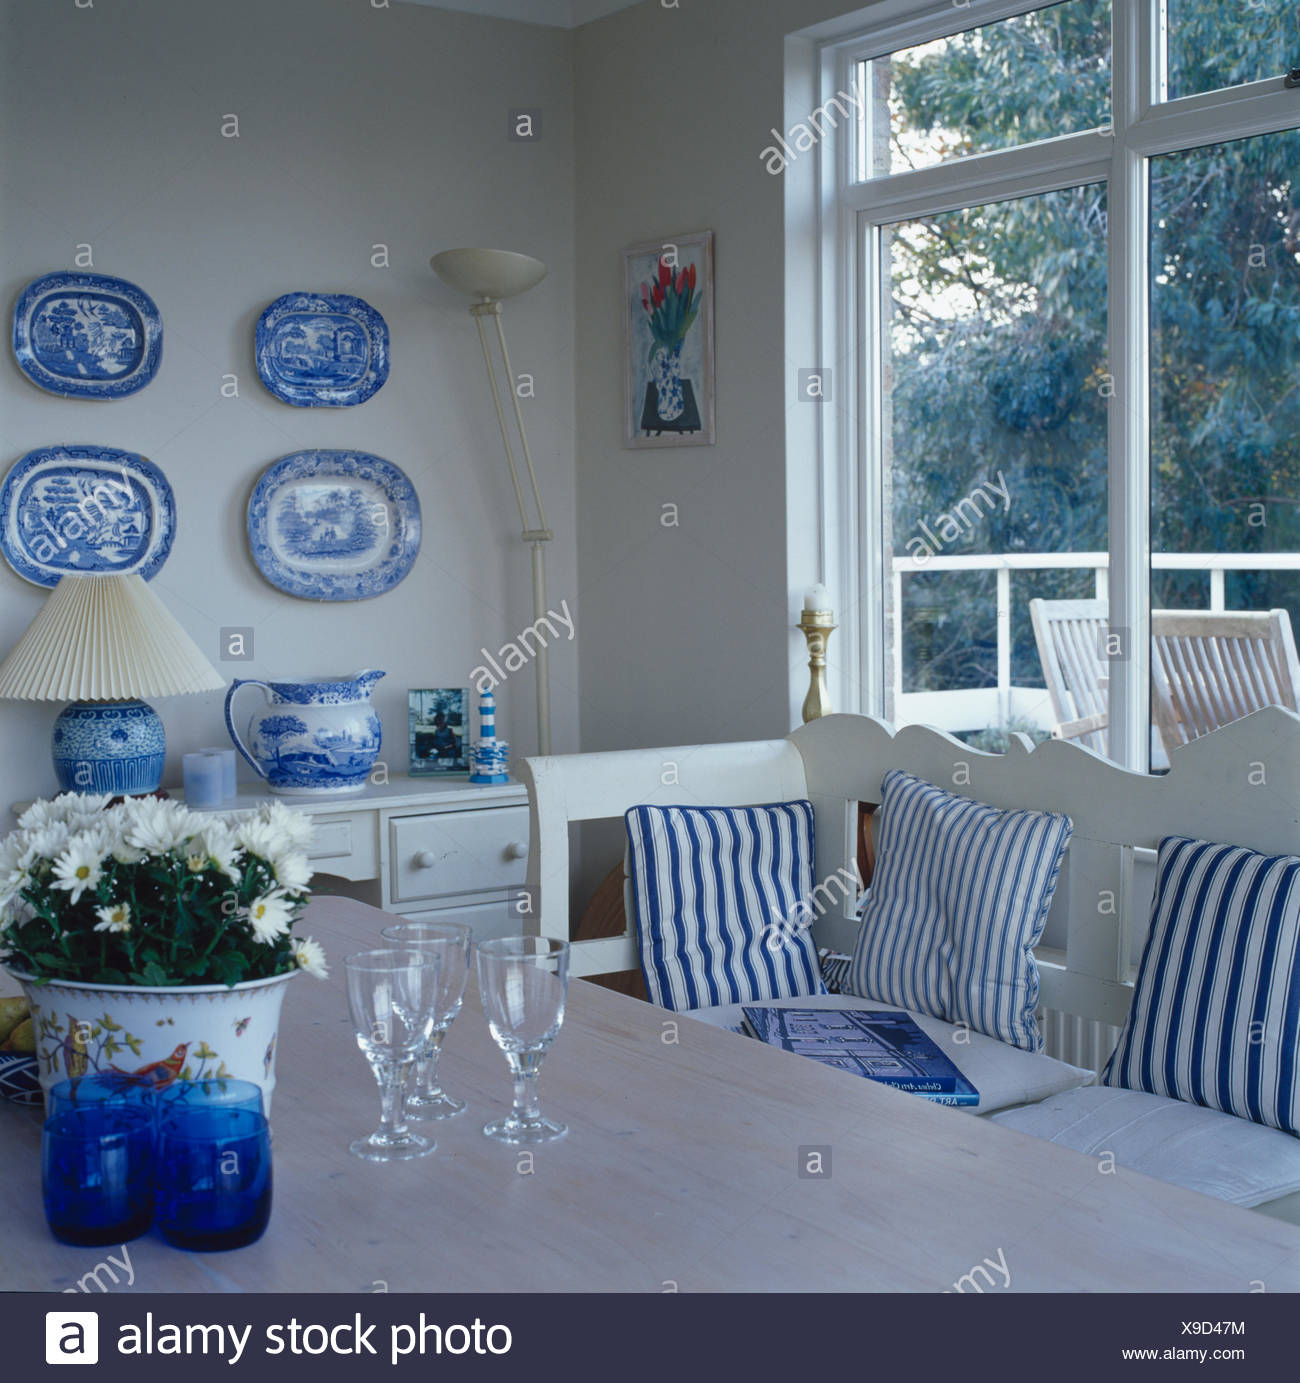 Collection of blue+white plates on wall of dining room with blue striped cushions on white settle in front of window - Stock Image